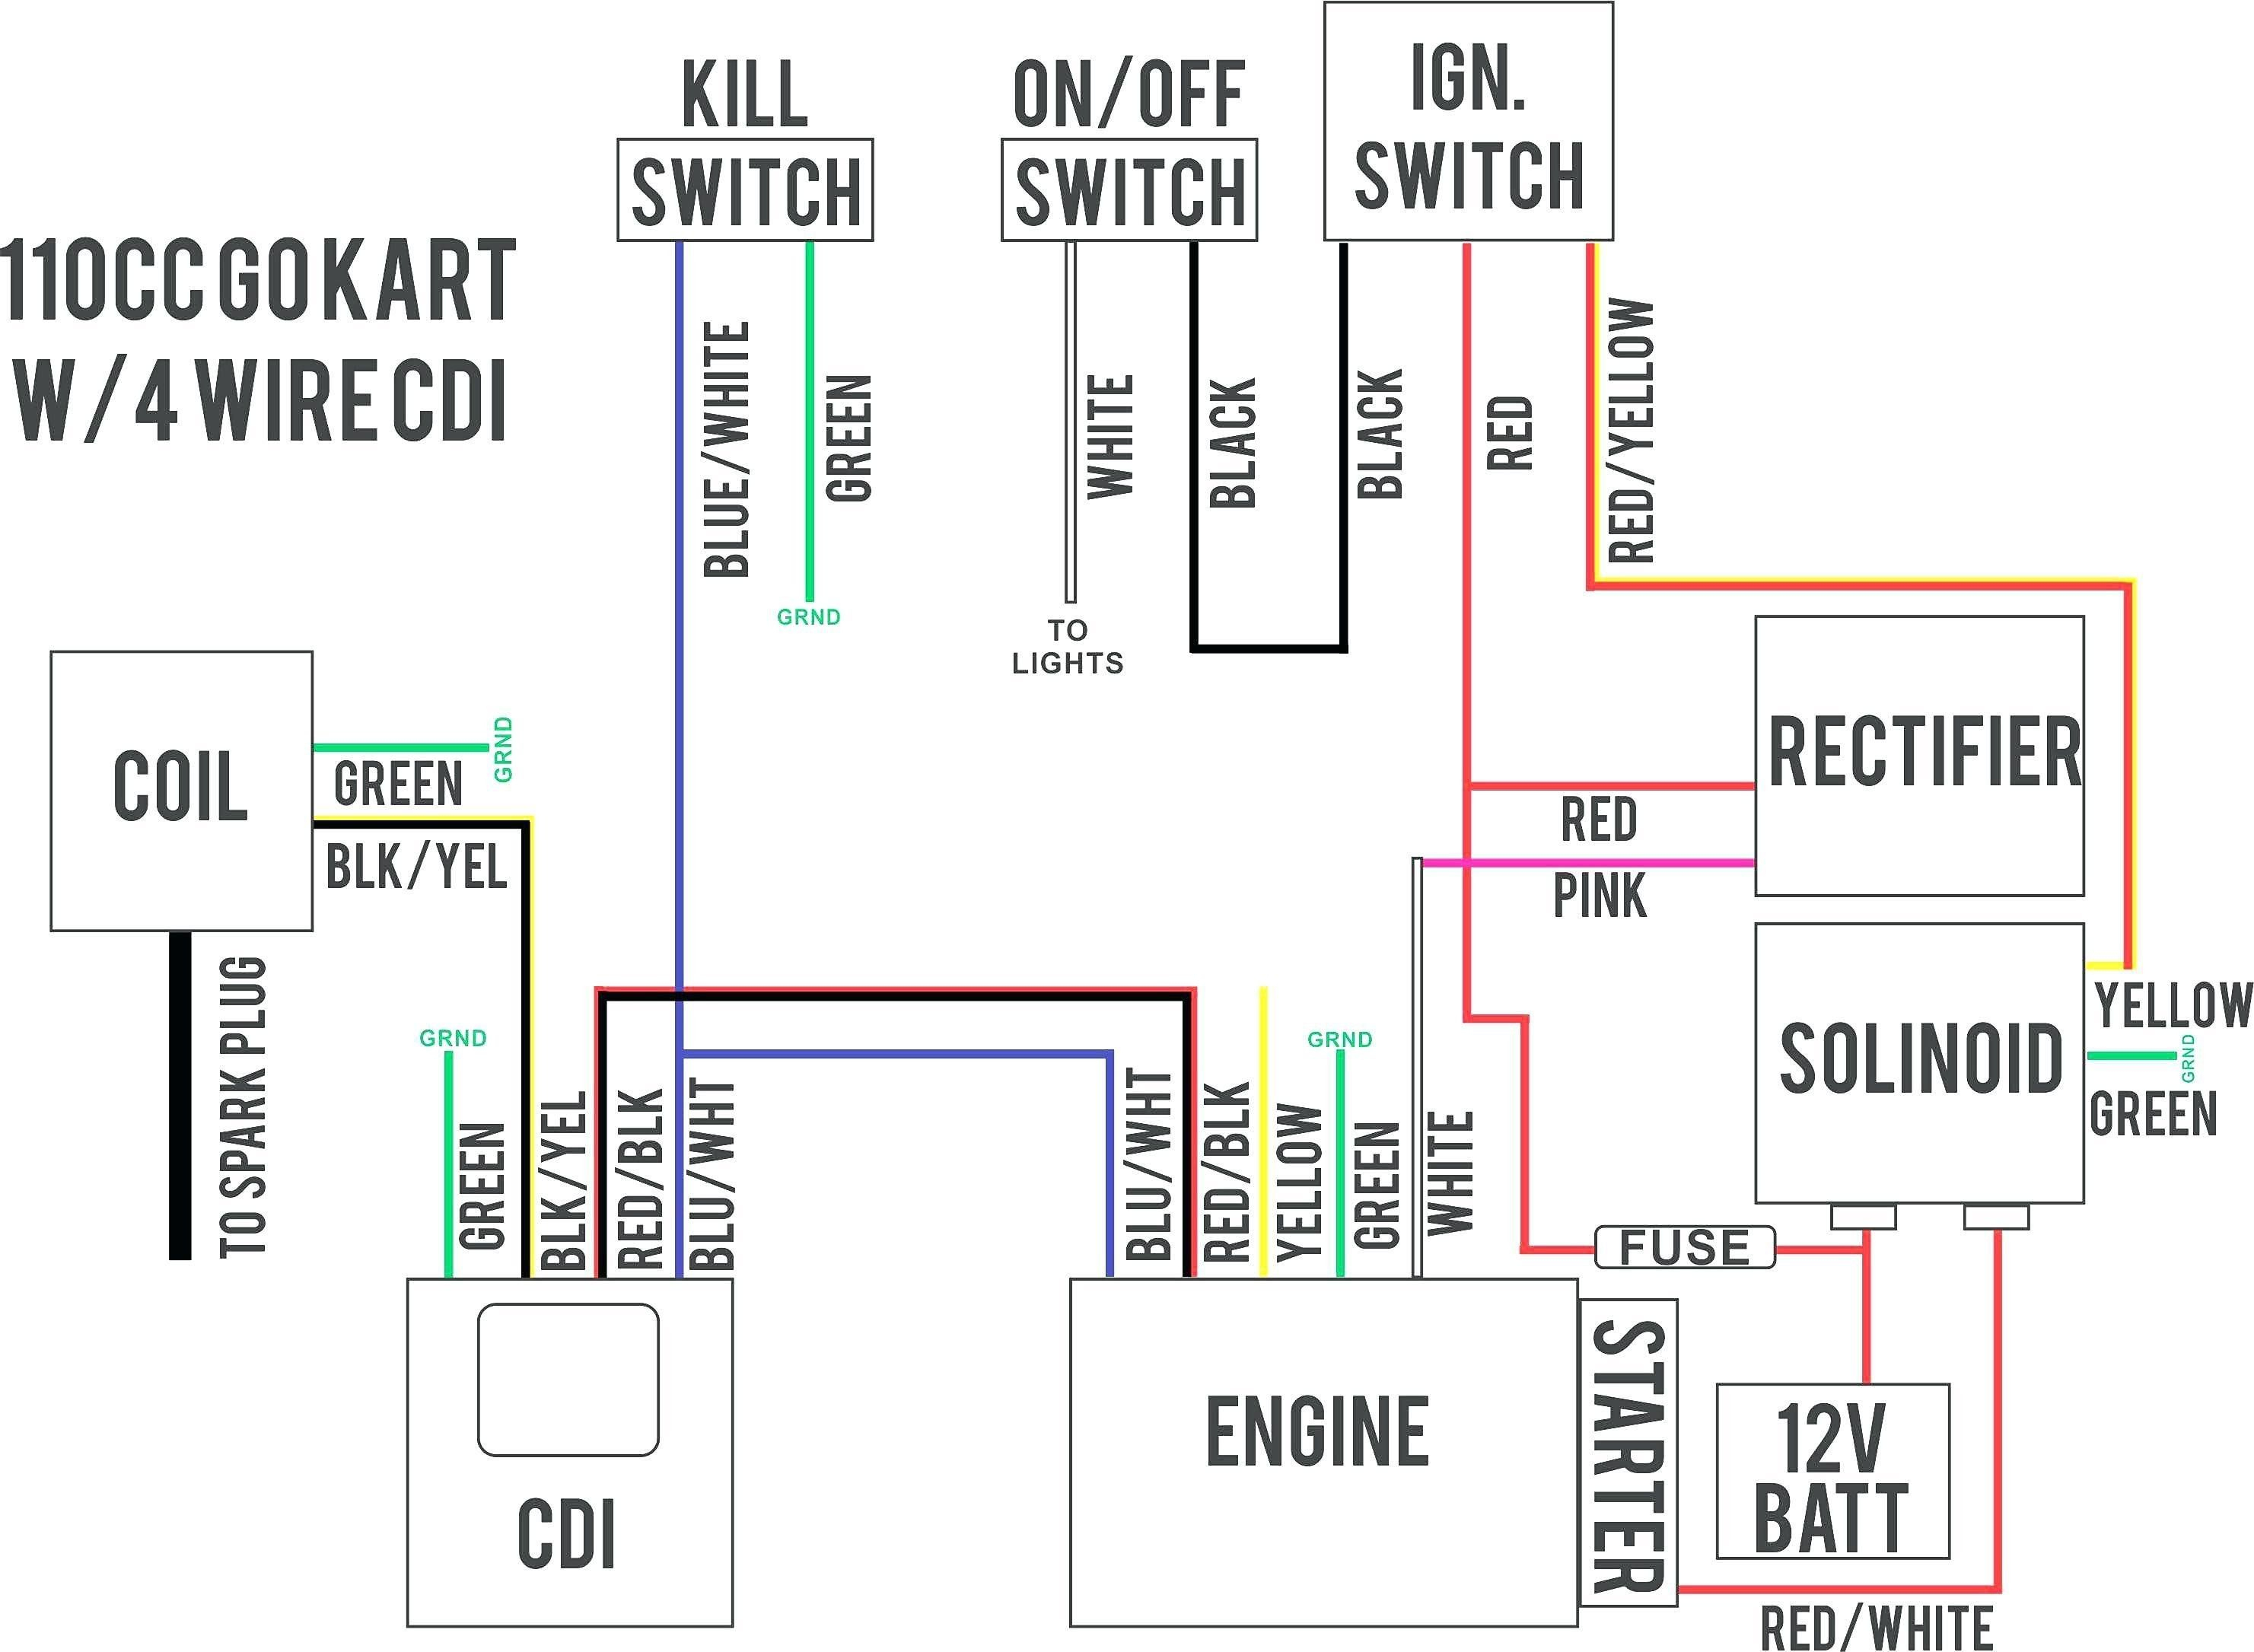 Tps Wiring Harness | Wiring Diagram - Accelerator Pedal Position Sensor Wiring Diagram